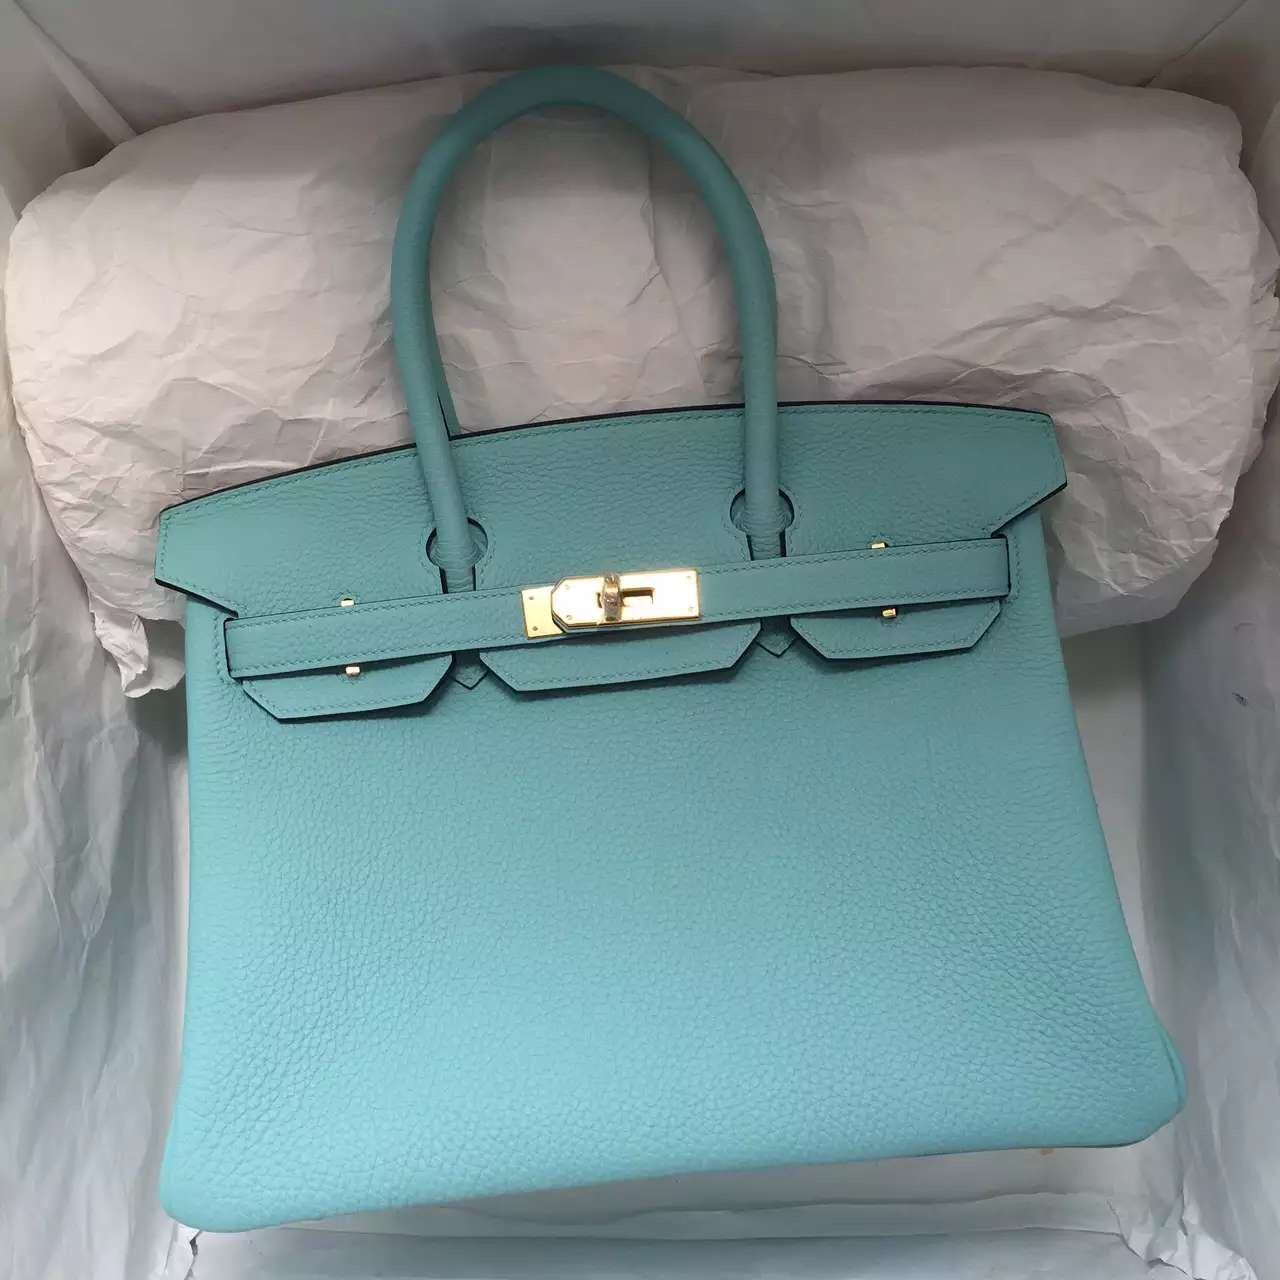 Discount Hermes 3P Lagon Blue Togo Leather Birkin Bag 30CM Fashion Women's Handbag